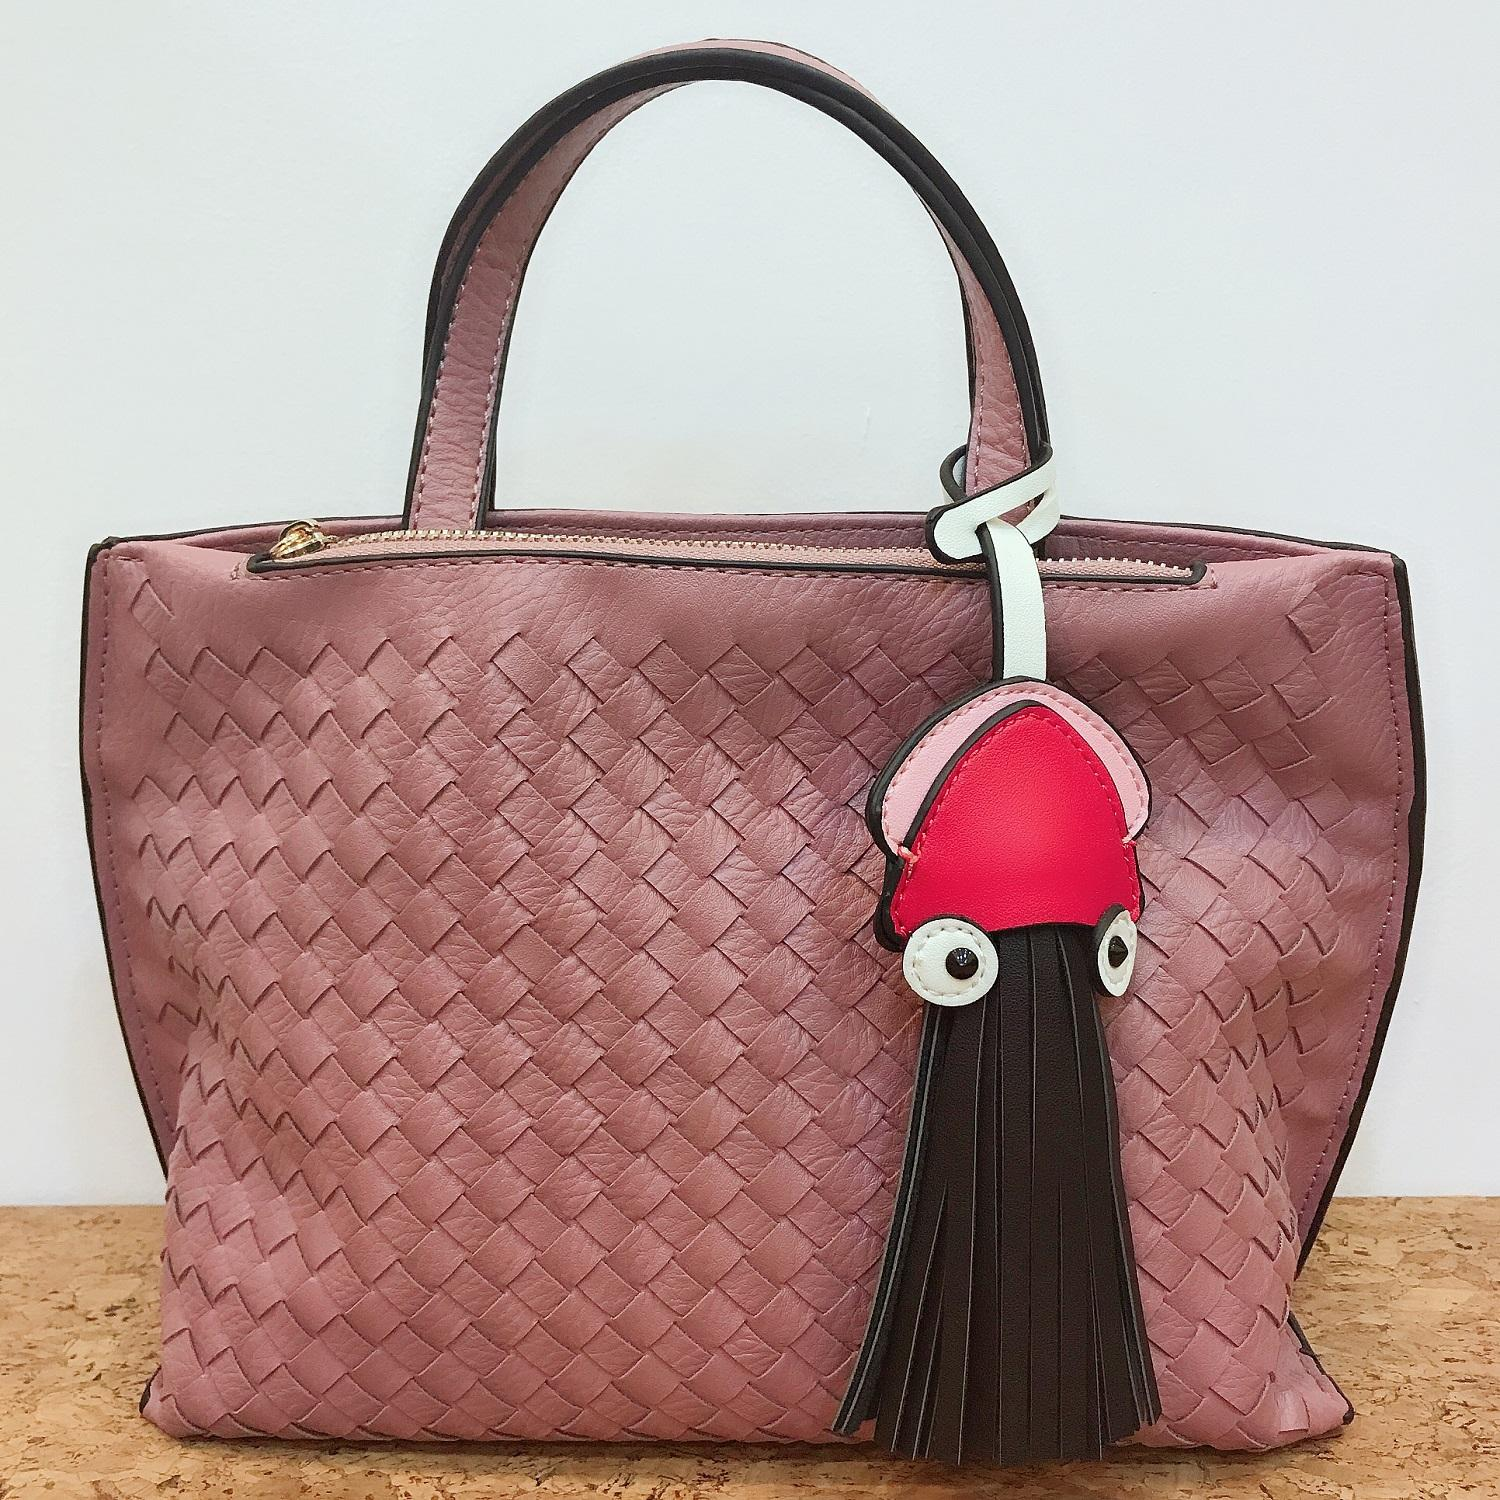 The Squid Weave Bag